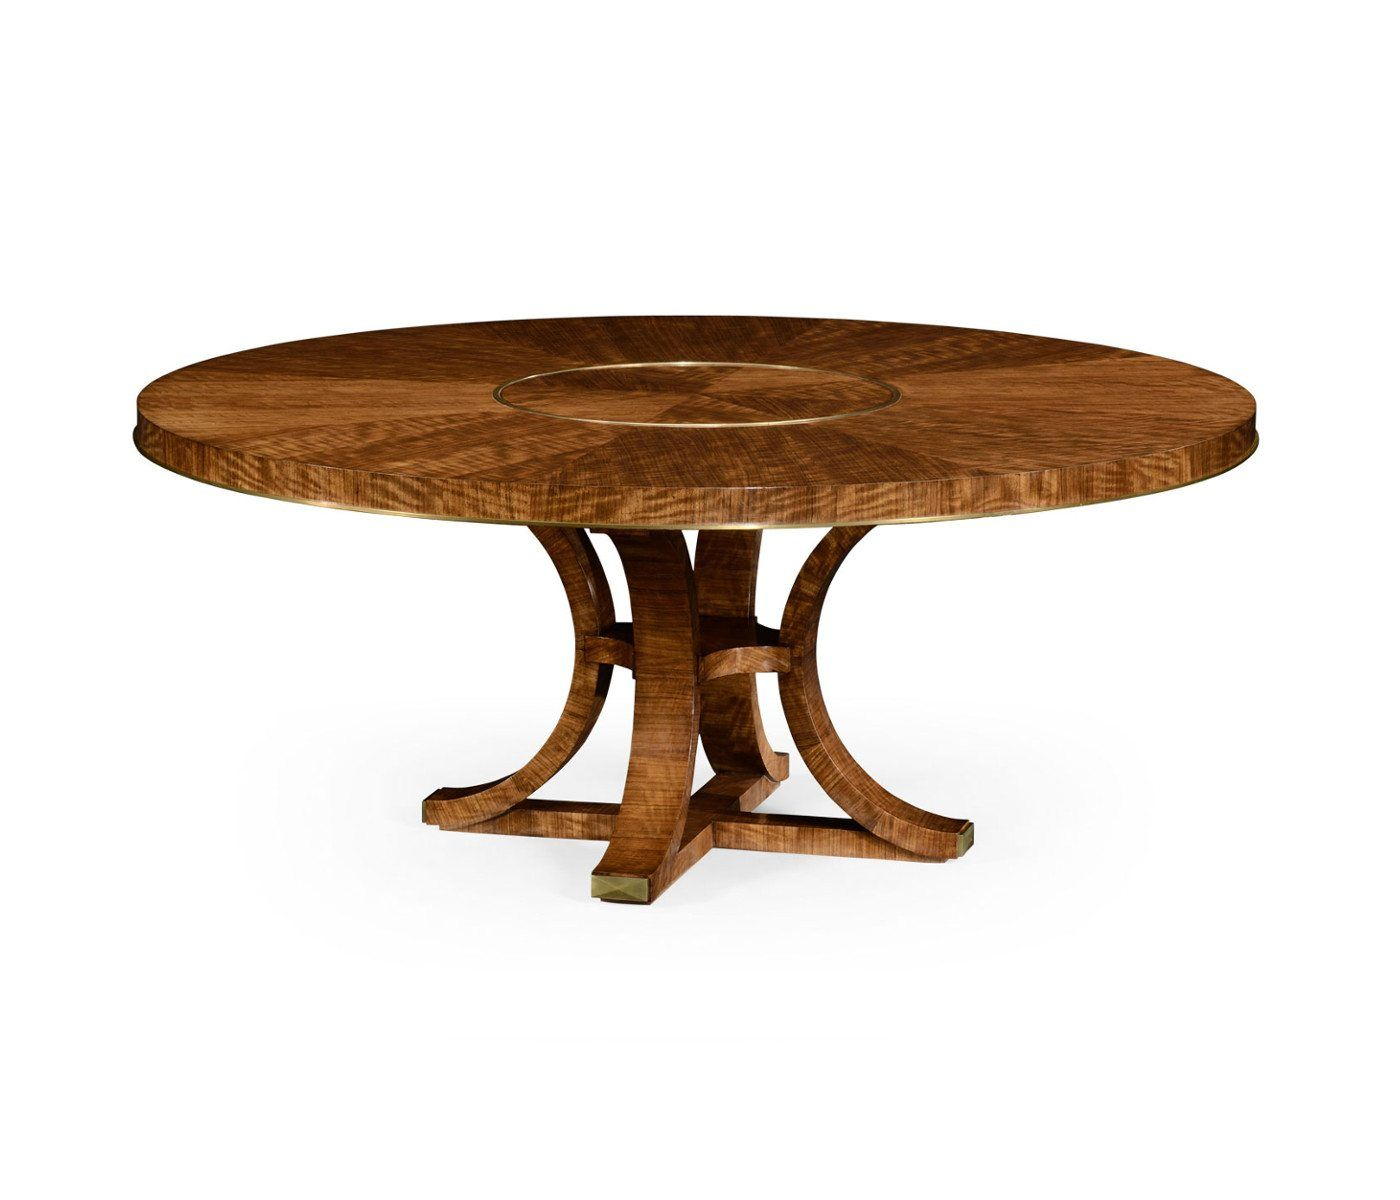 Transitional 72 Inch Round Dining Table With Brass Inlay And Lazy